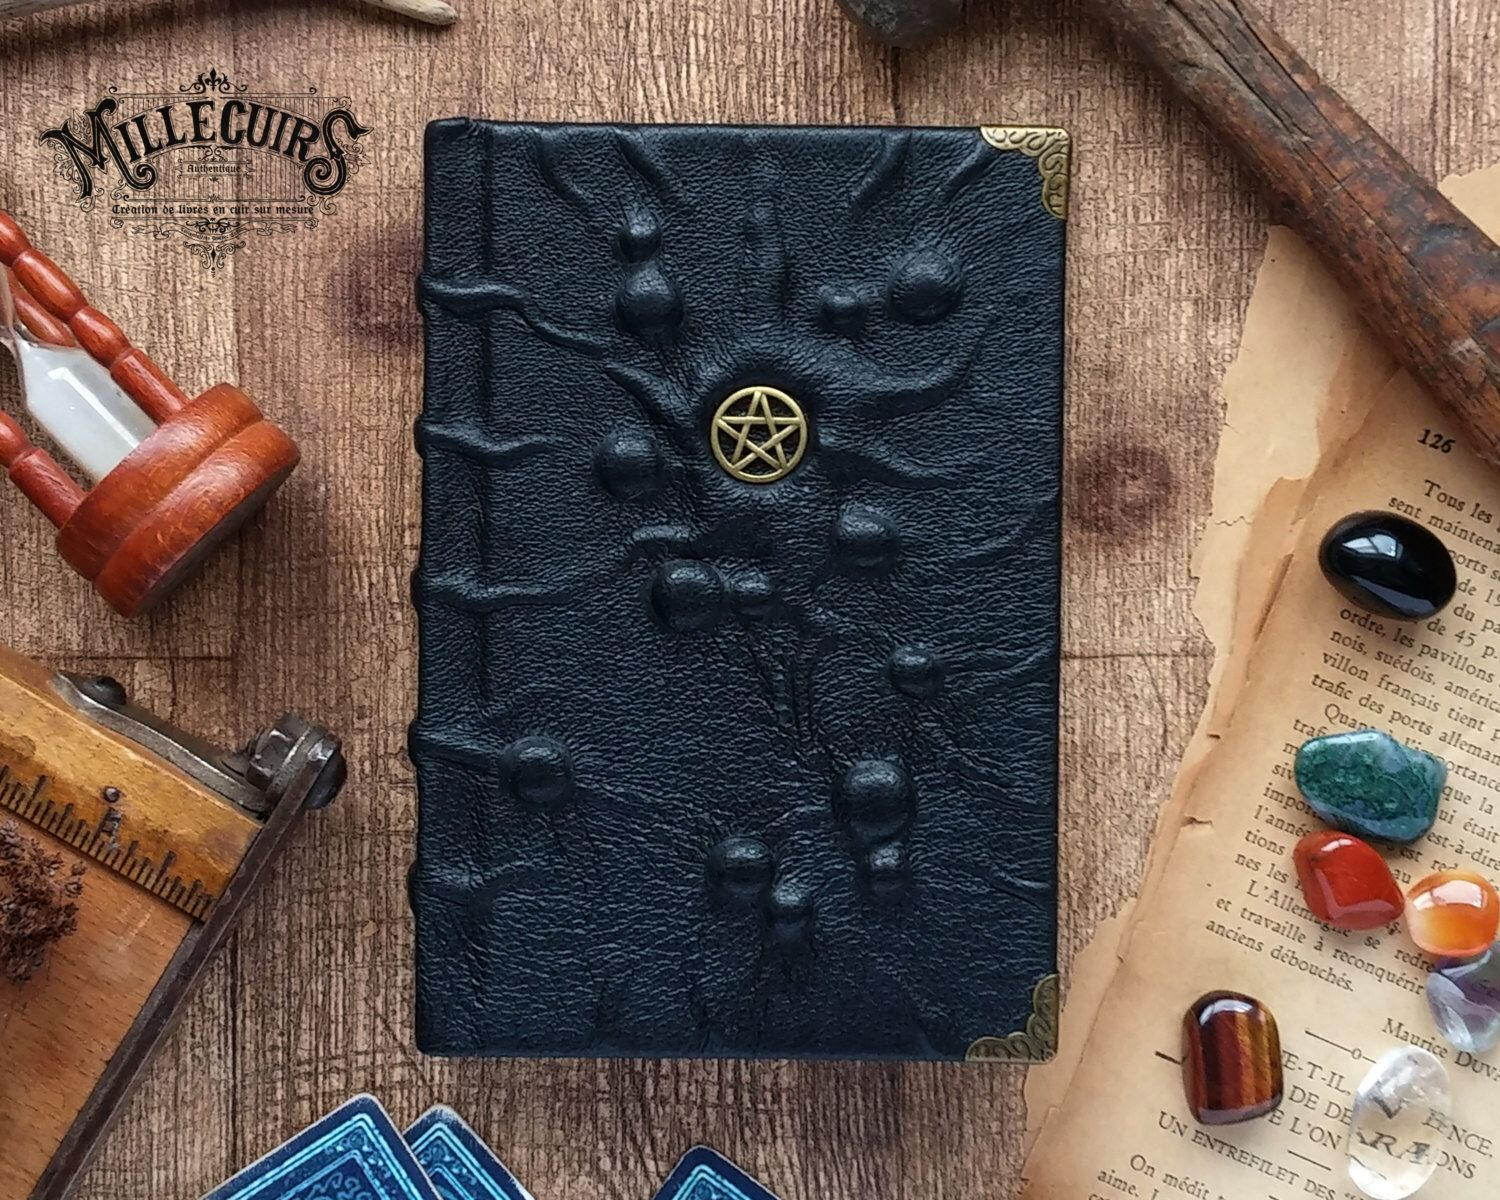 Handmade Wicca Journal, Handcraft Leather Wiccan Book, Pagan Pentacle Black  Notebook, Witch Witchcraft Pentagram Diary, Magic Sketchbook